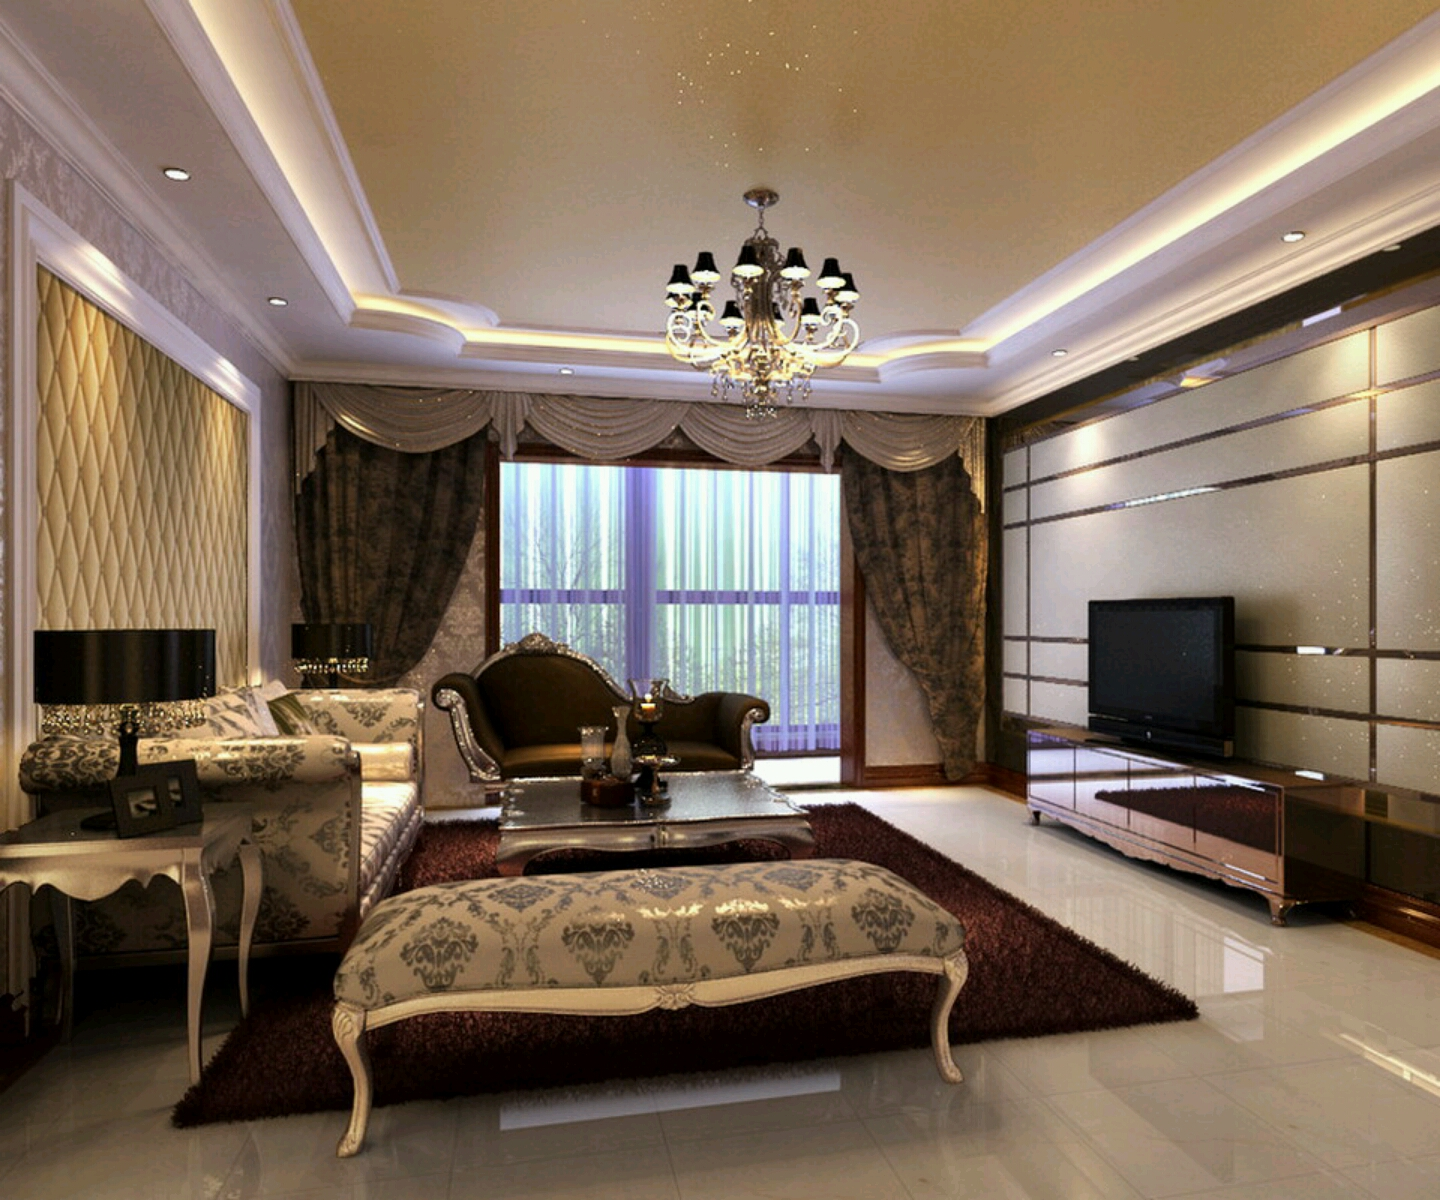 Interior decorating ideas living rooms dream house for Internal home decoration